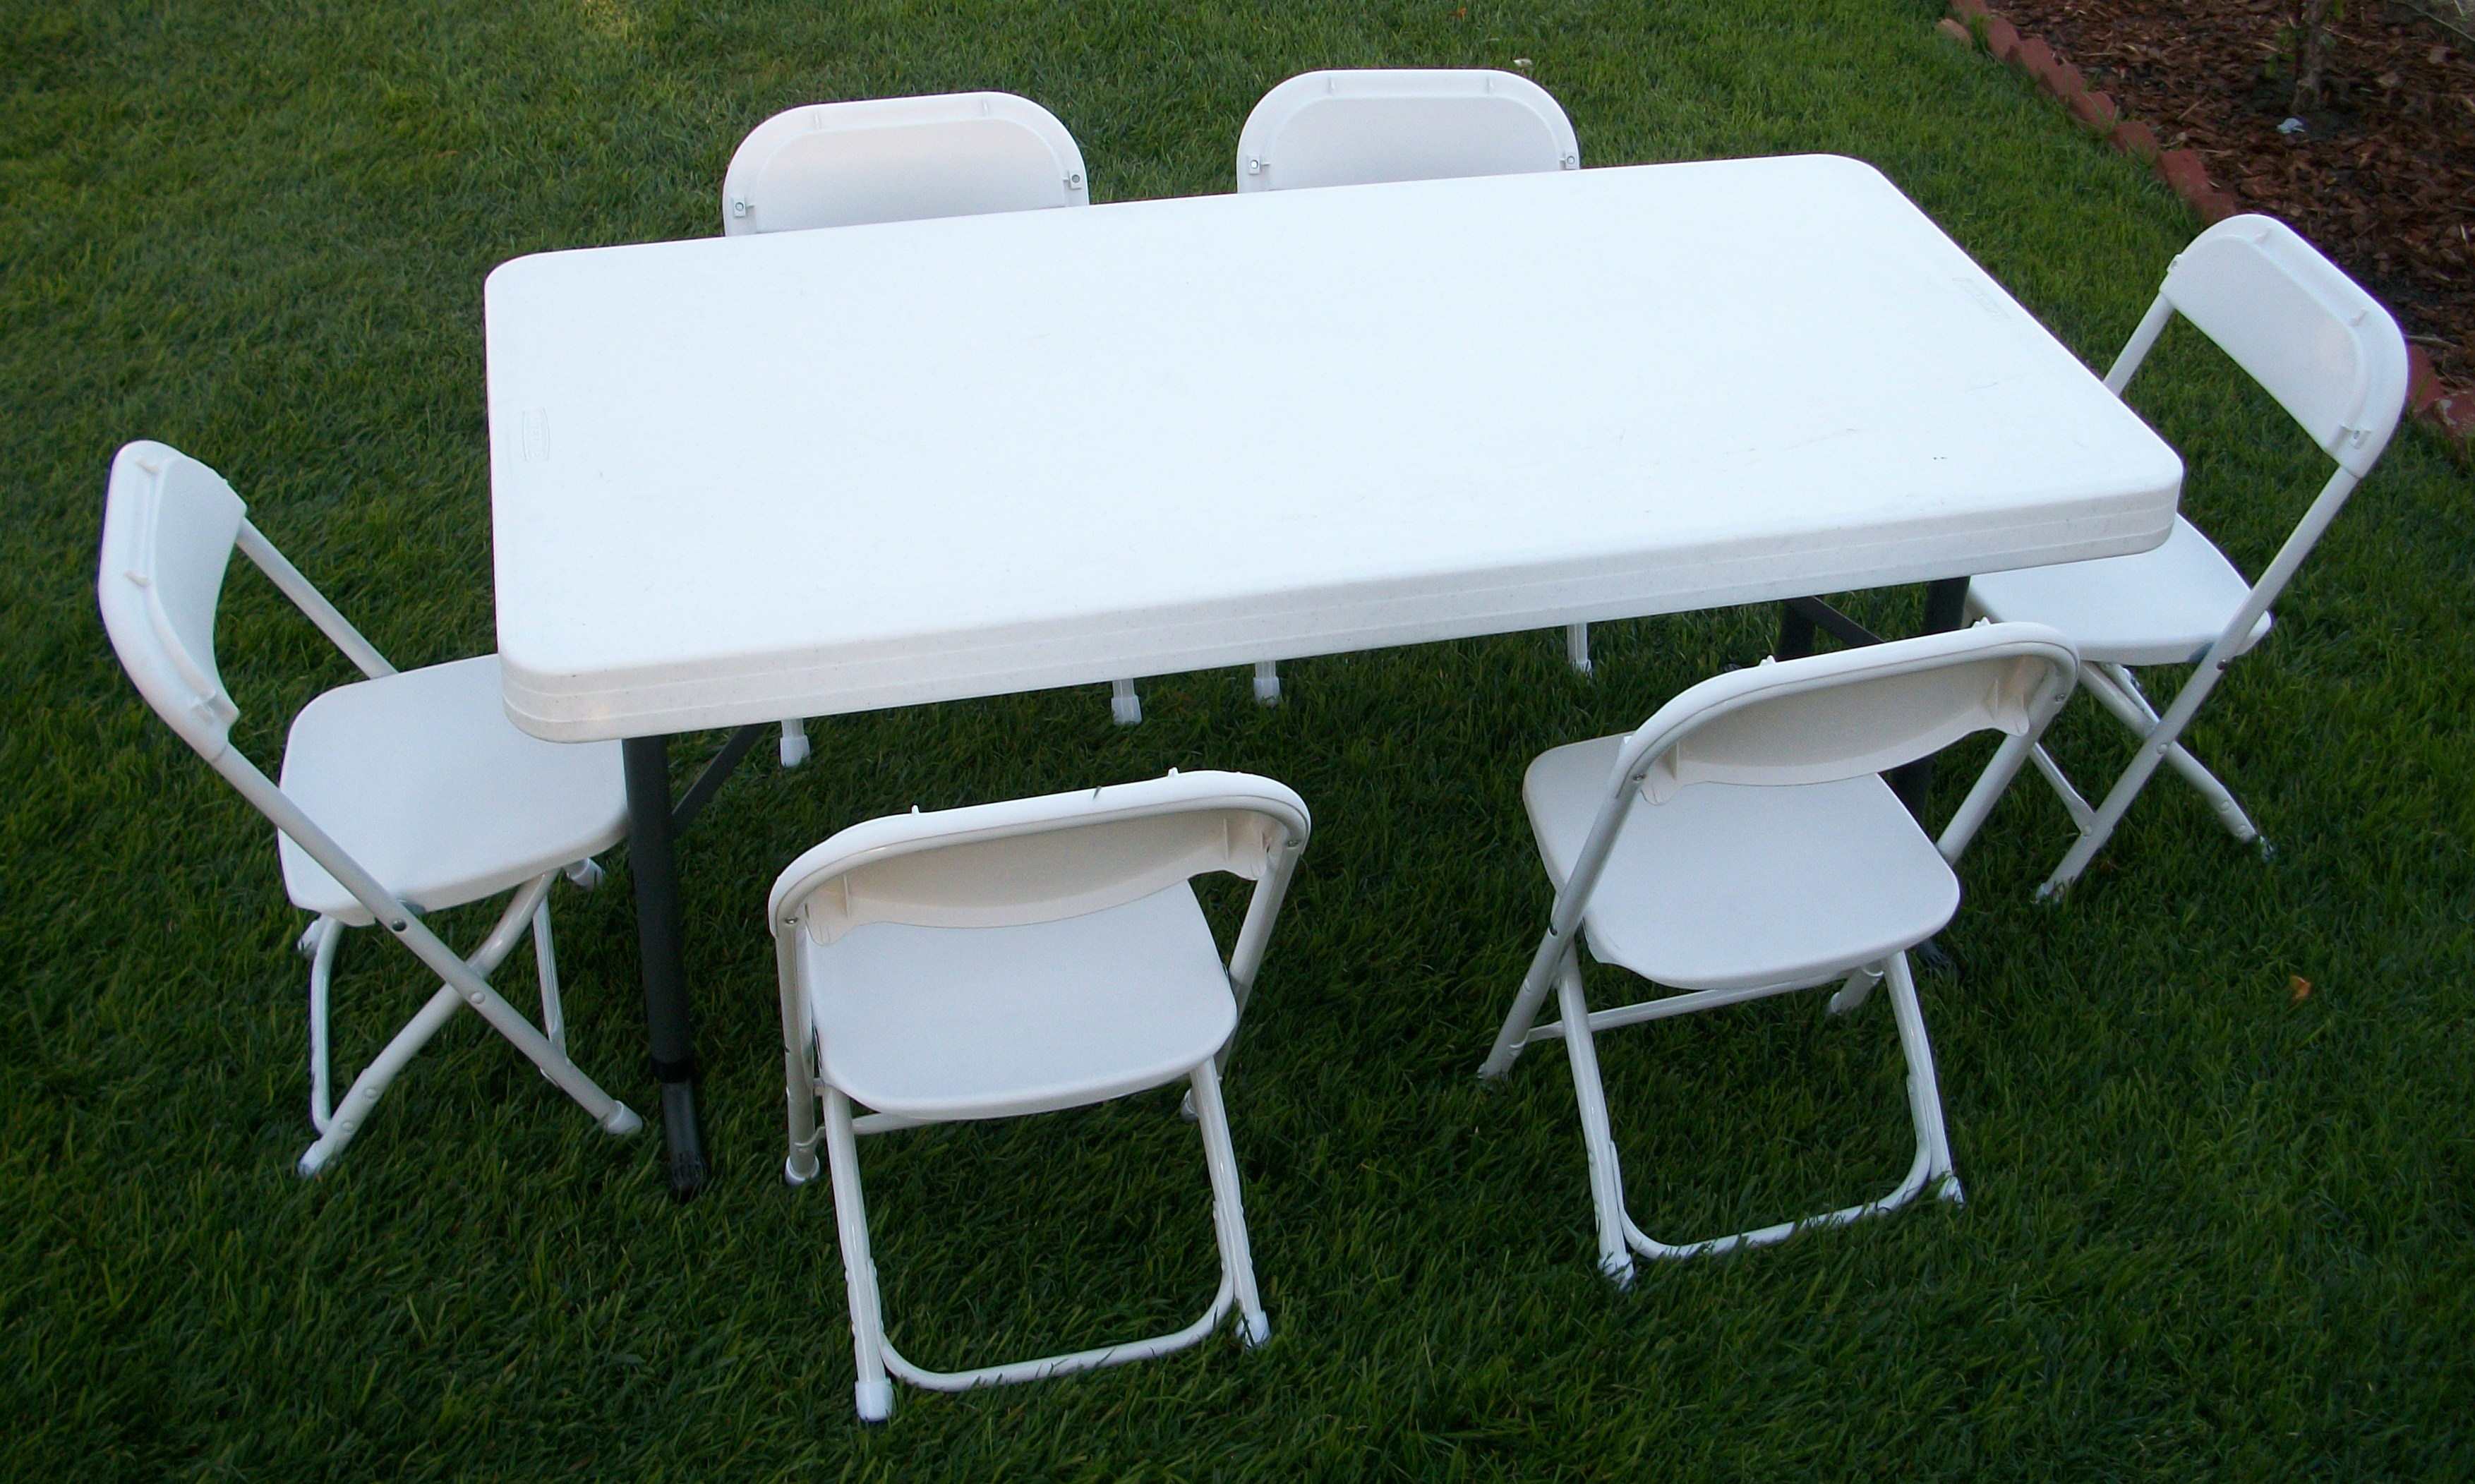 Where Can I Rent Tables And Chairs All About Events Ans Sevirces Accessaries Rental